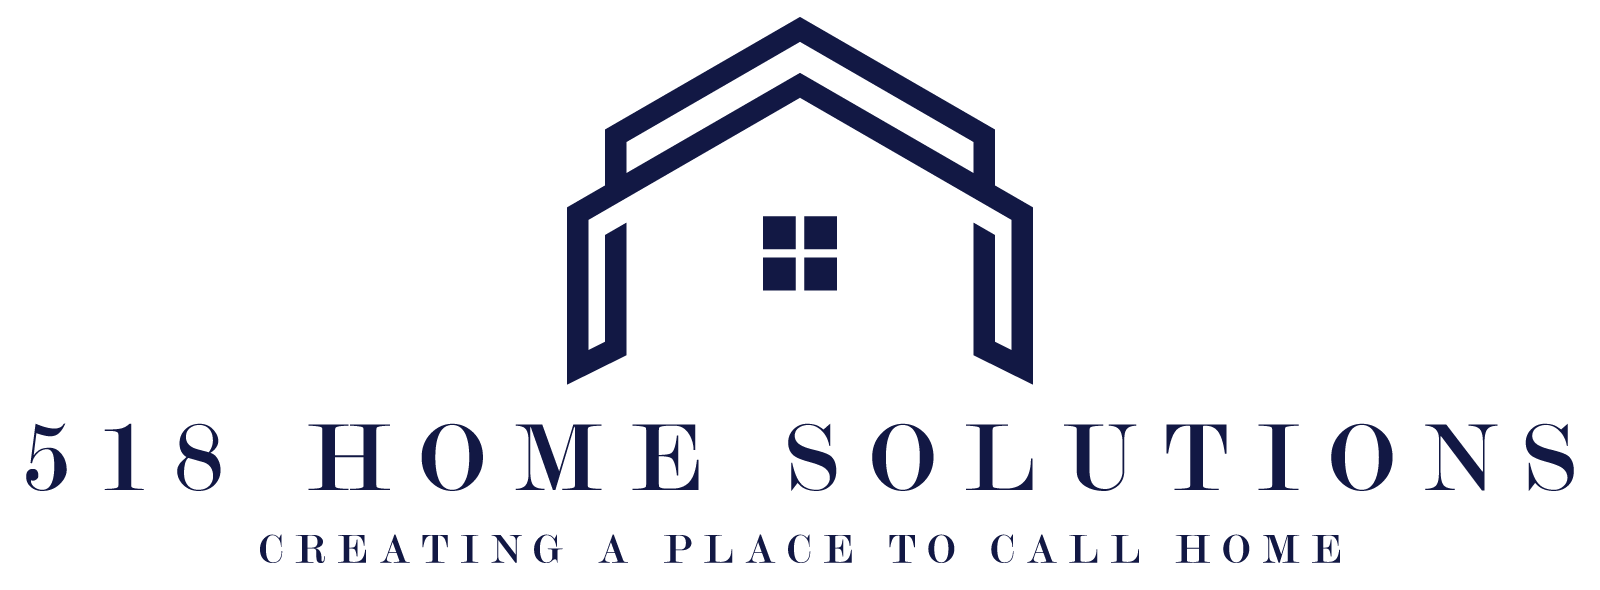 518 Home Solutions, LLC